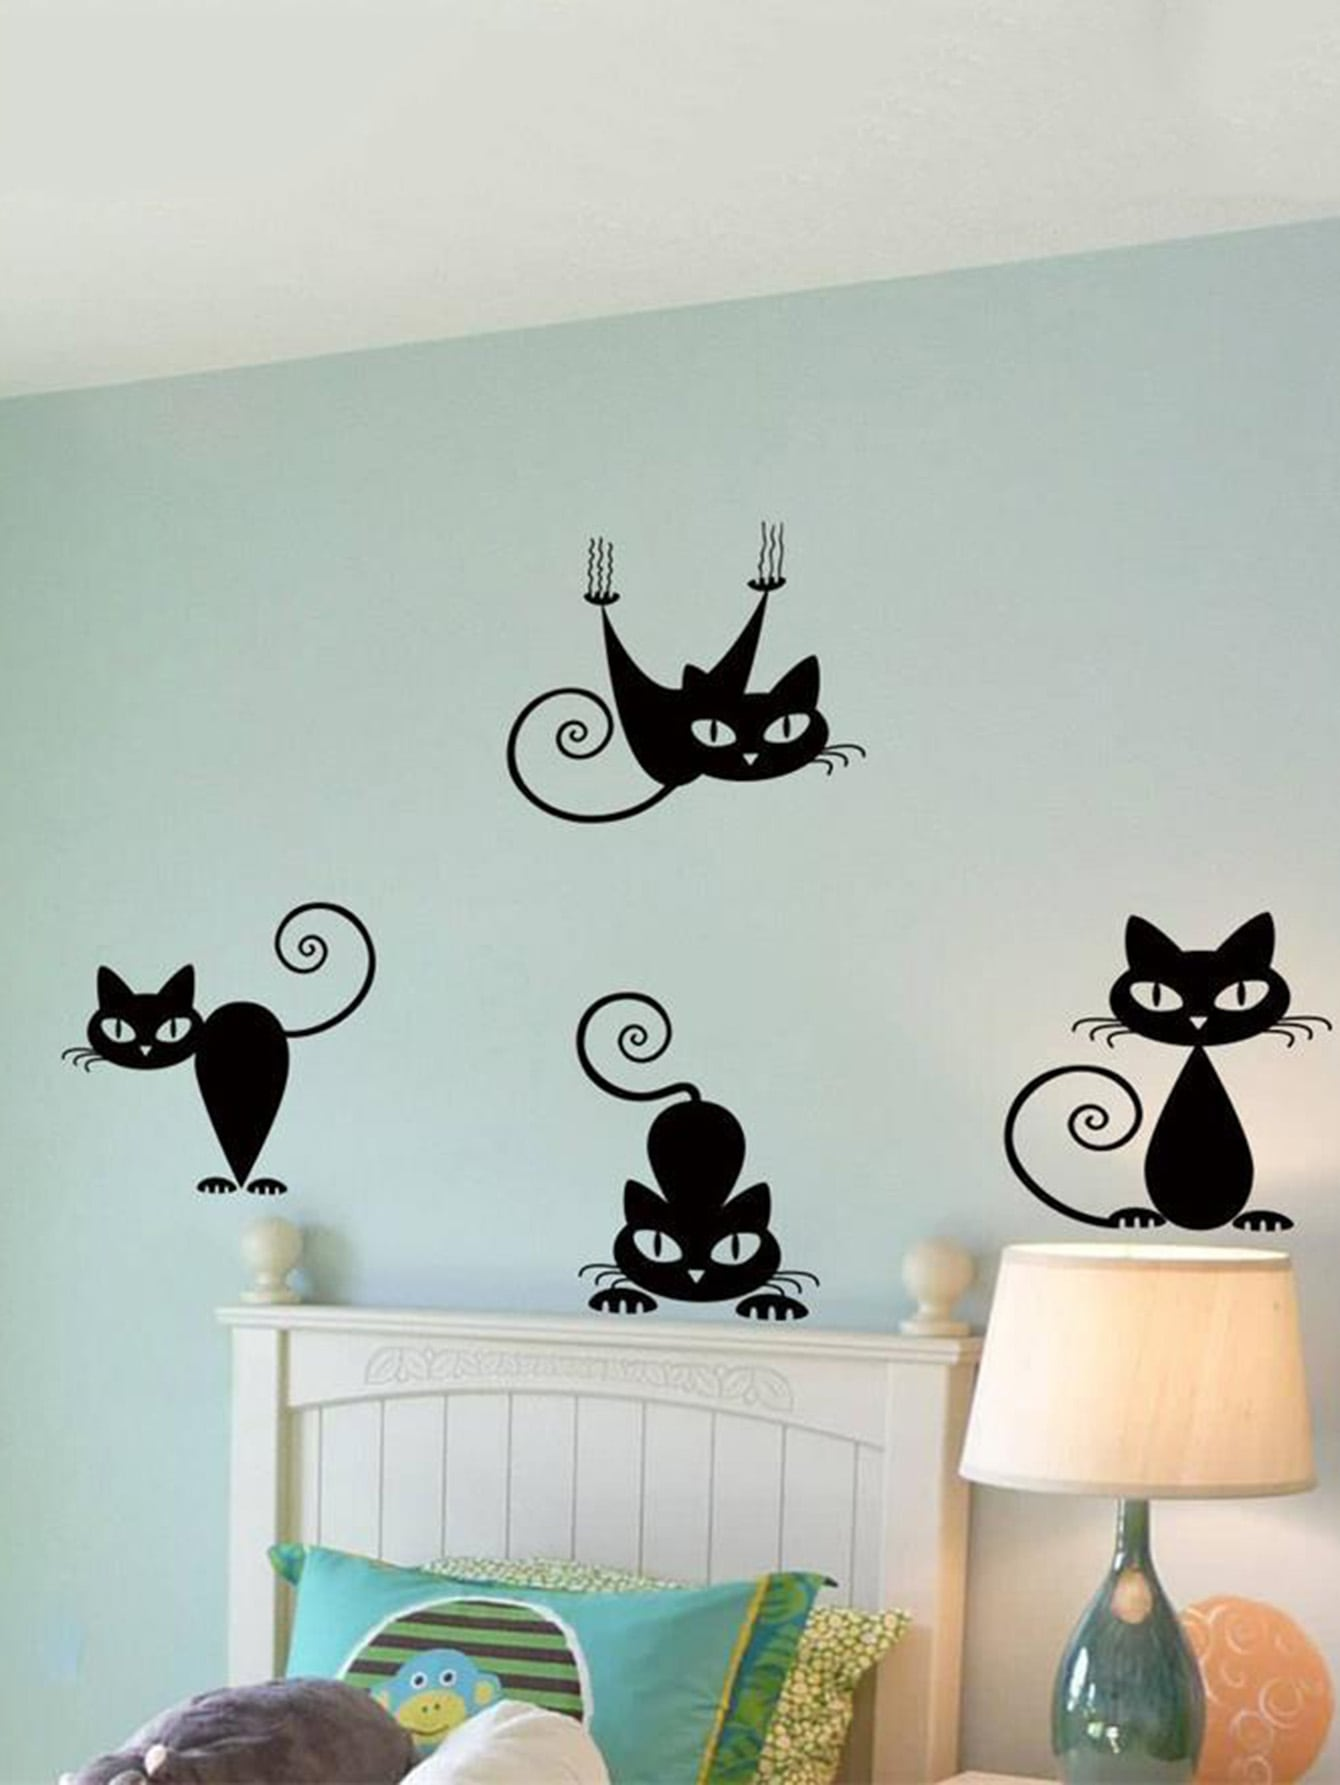 Cat Decor Wall Sticker couple cat wall sticker